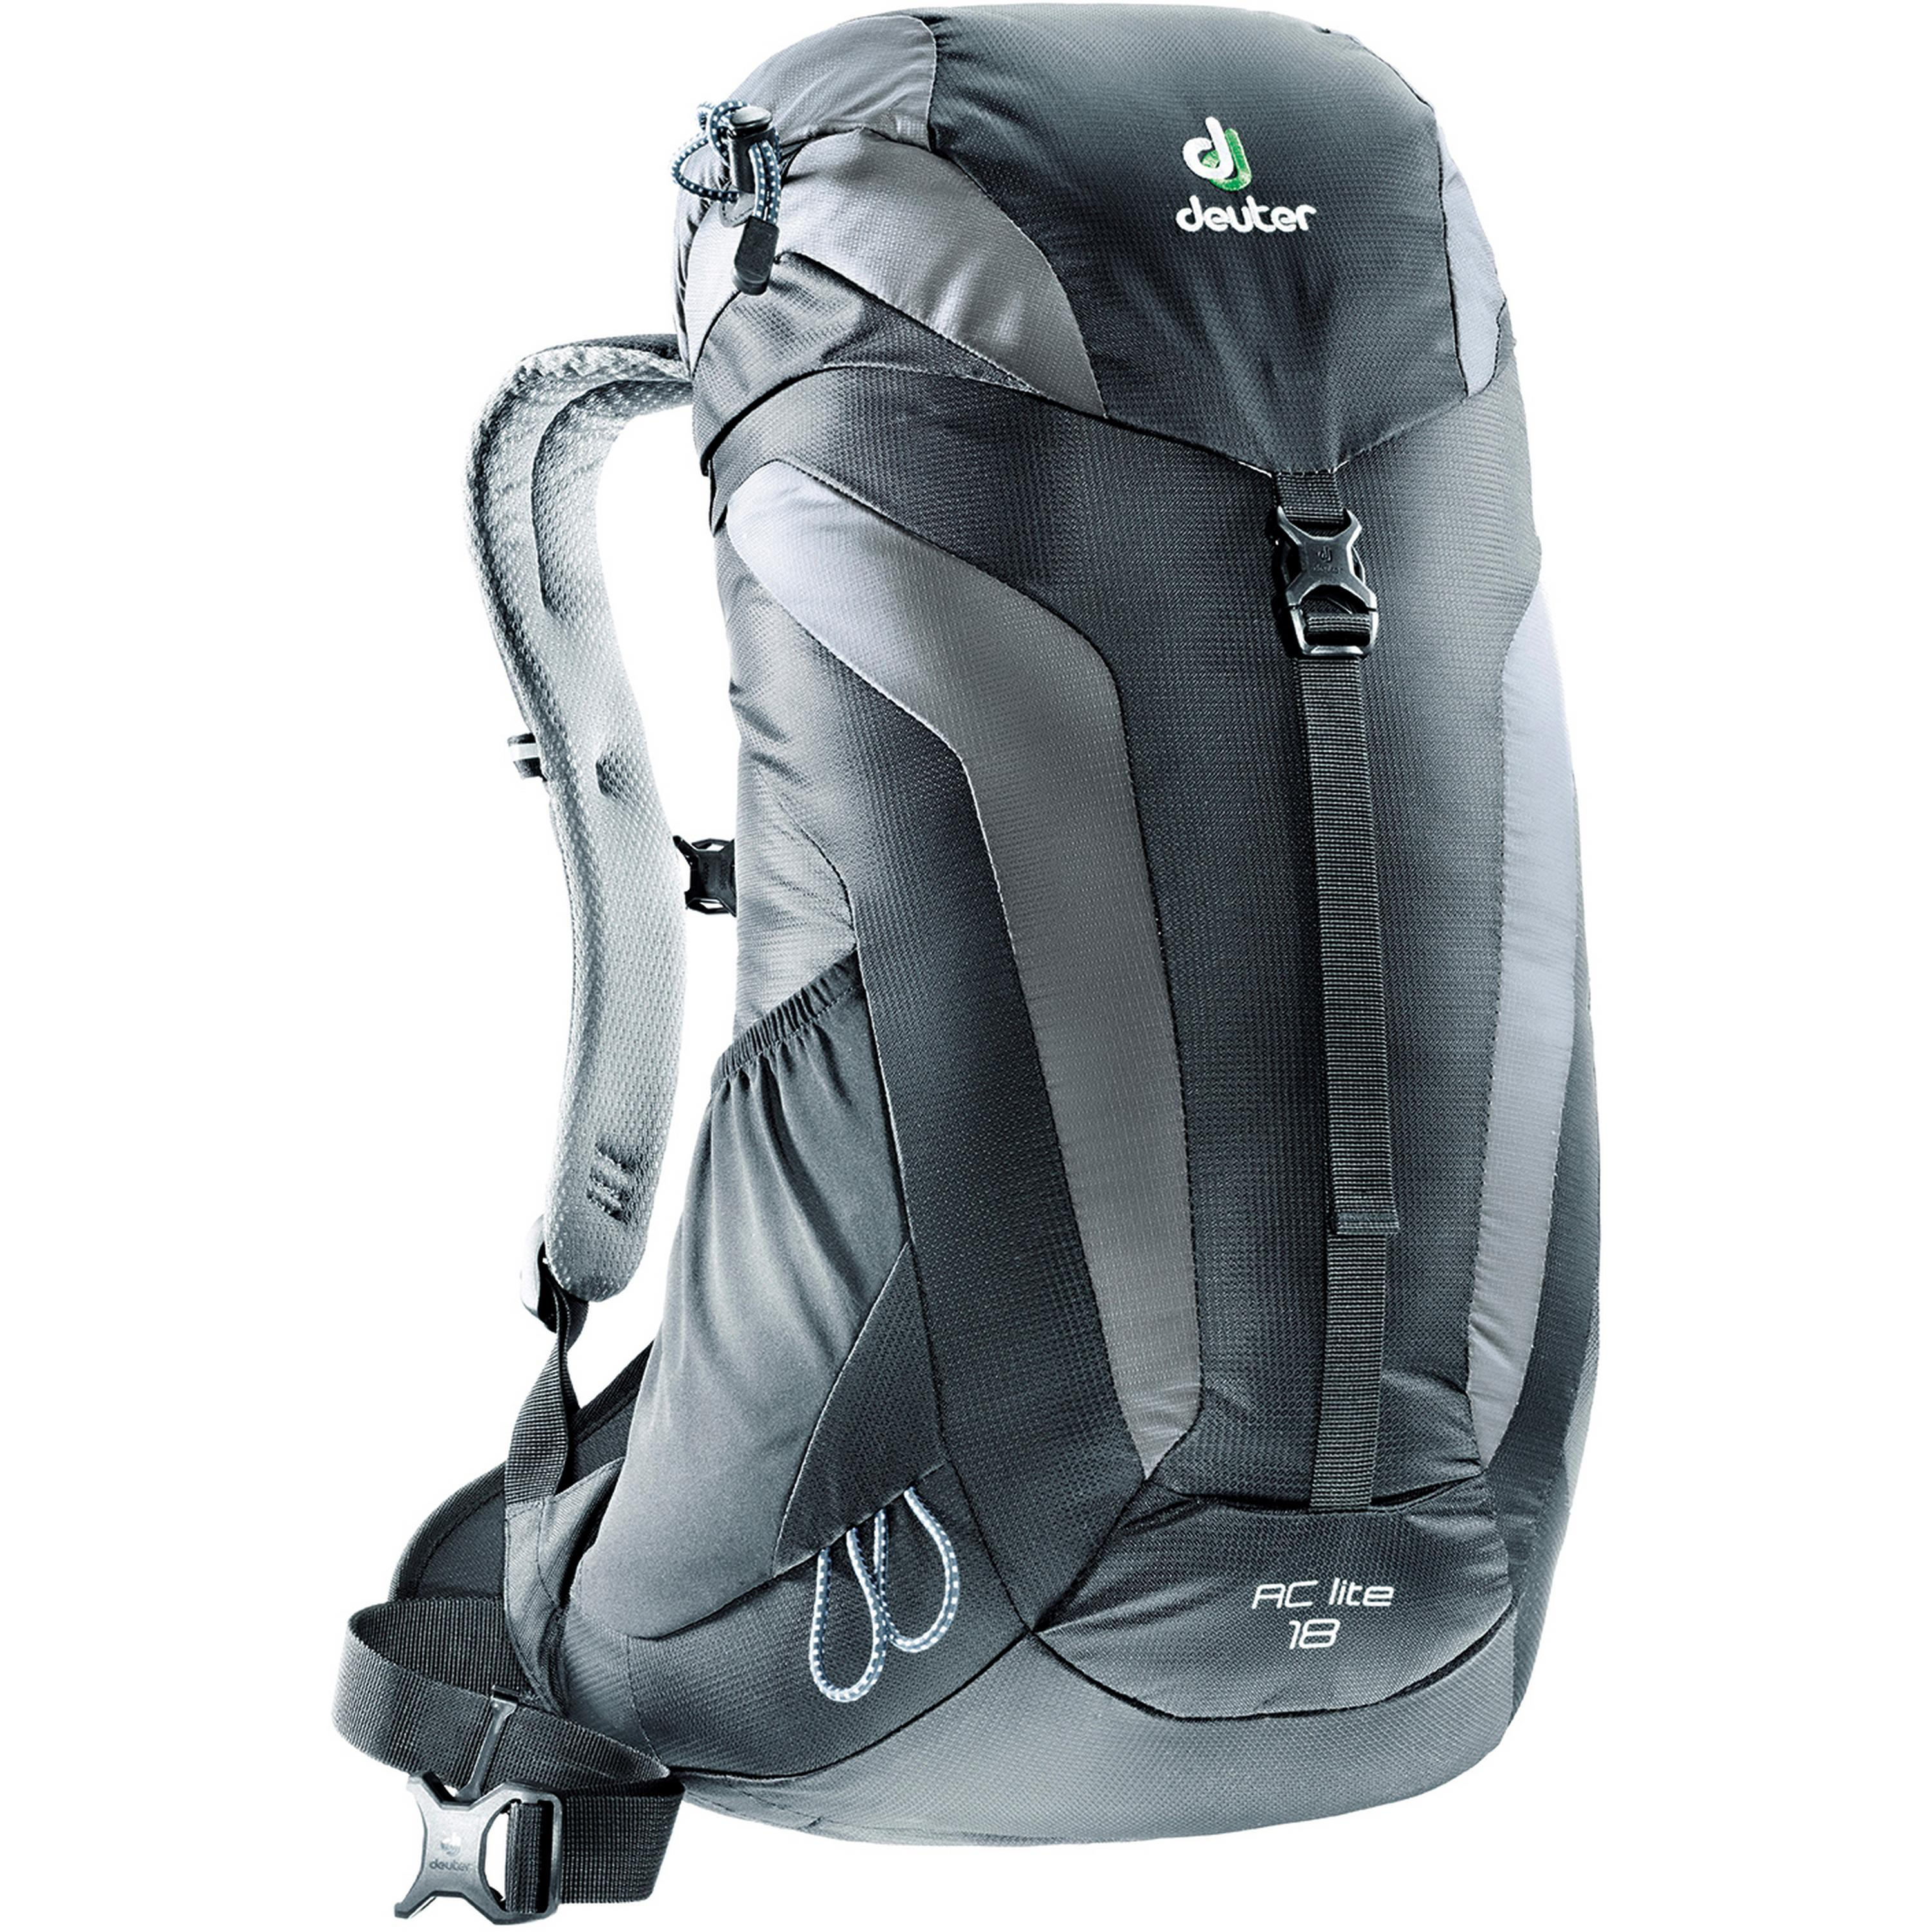 Image of Deuter AC Lite 18 - Tages Wanderrucksack - black/titan